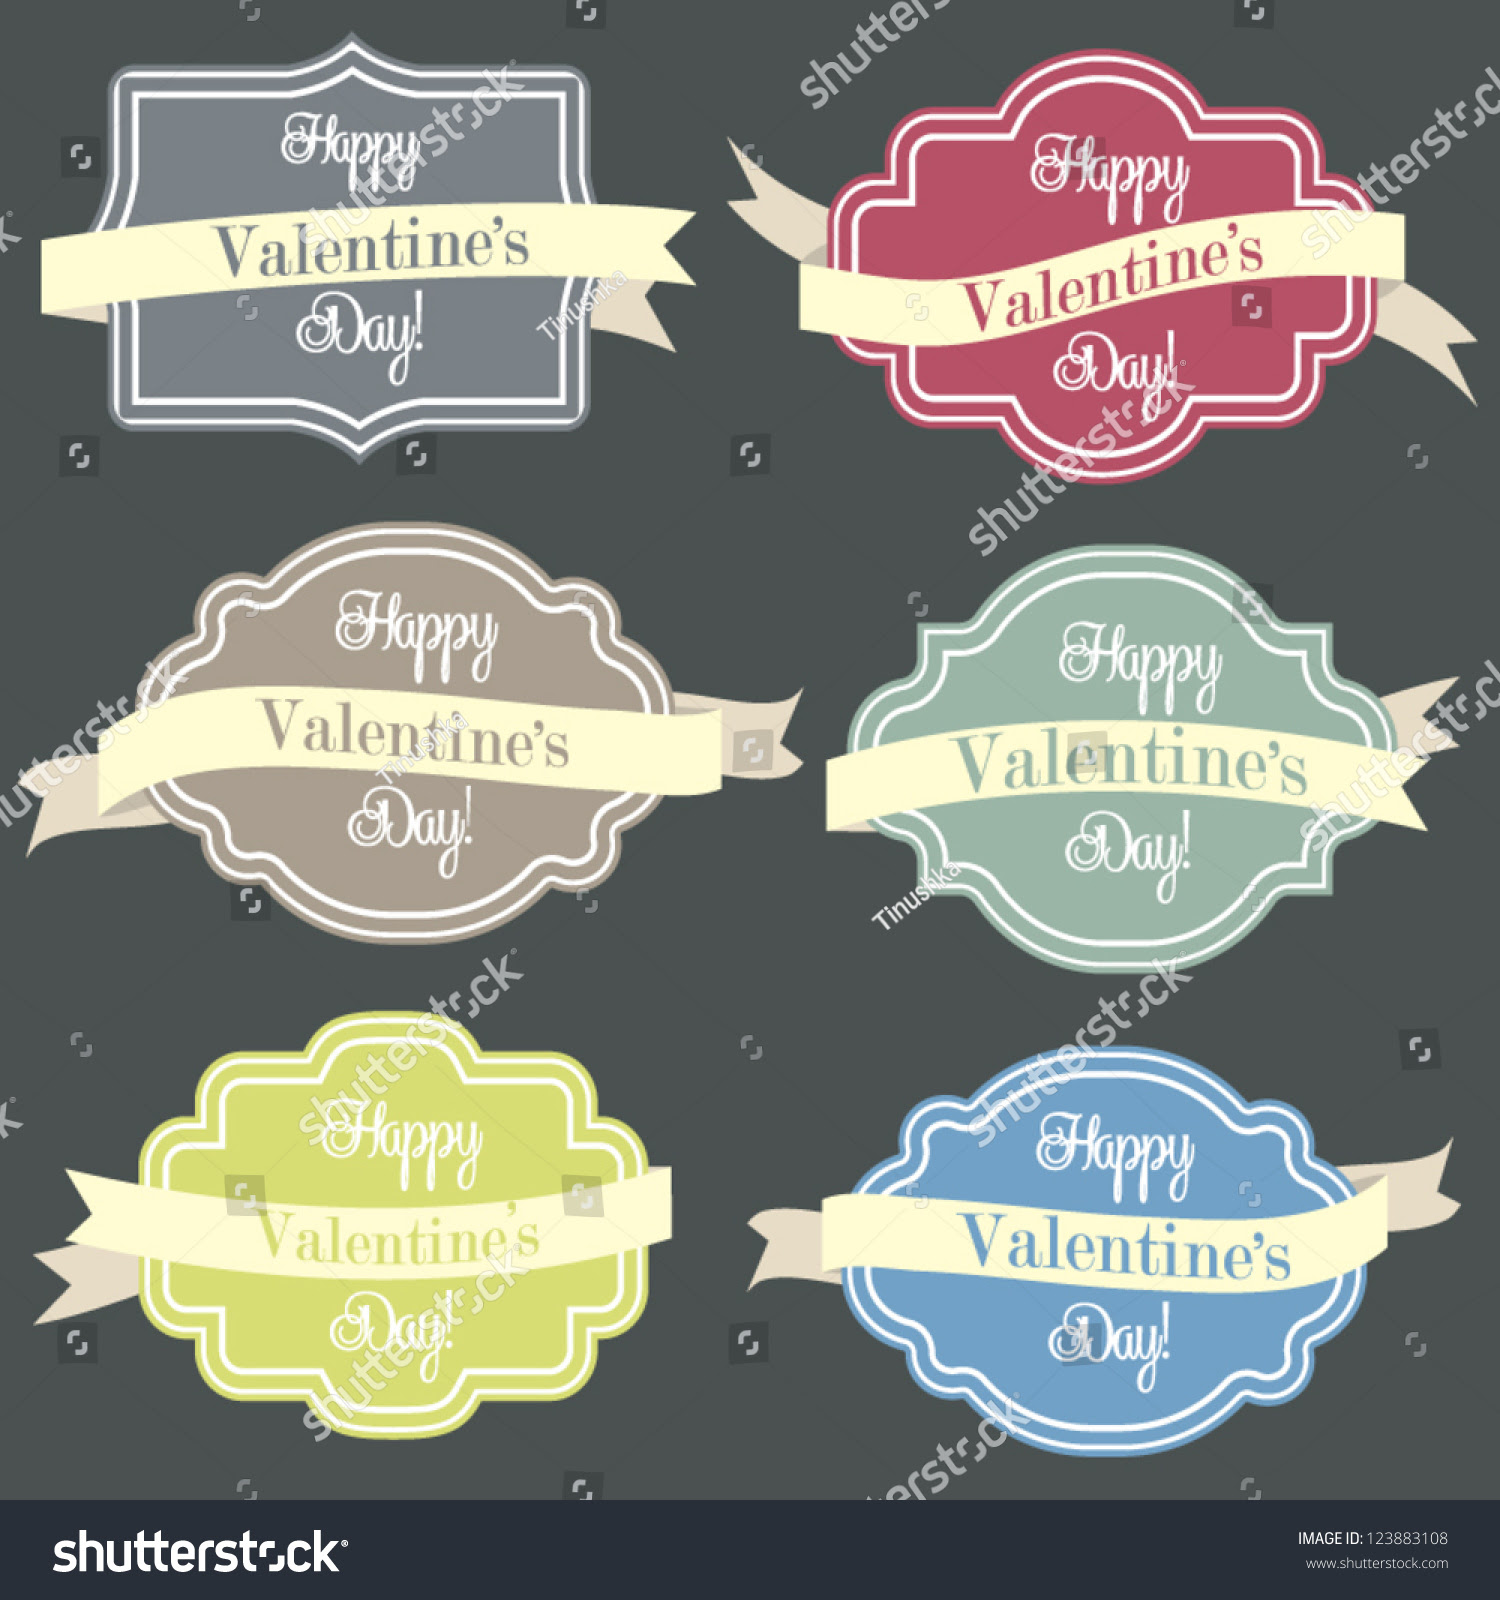 Vintage Styled Editable Labels And Ribbons / Banners, Colorful ...